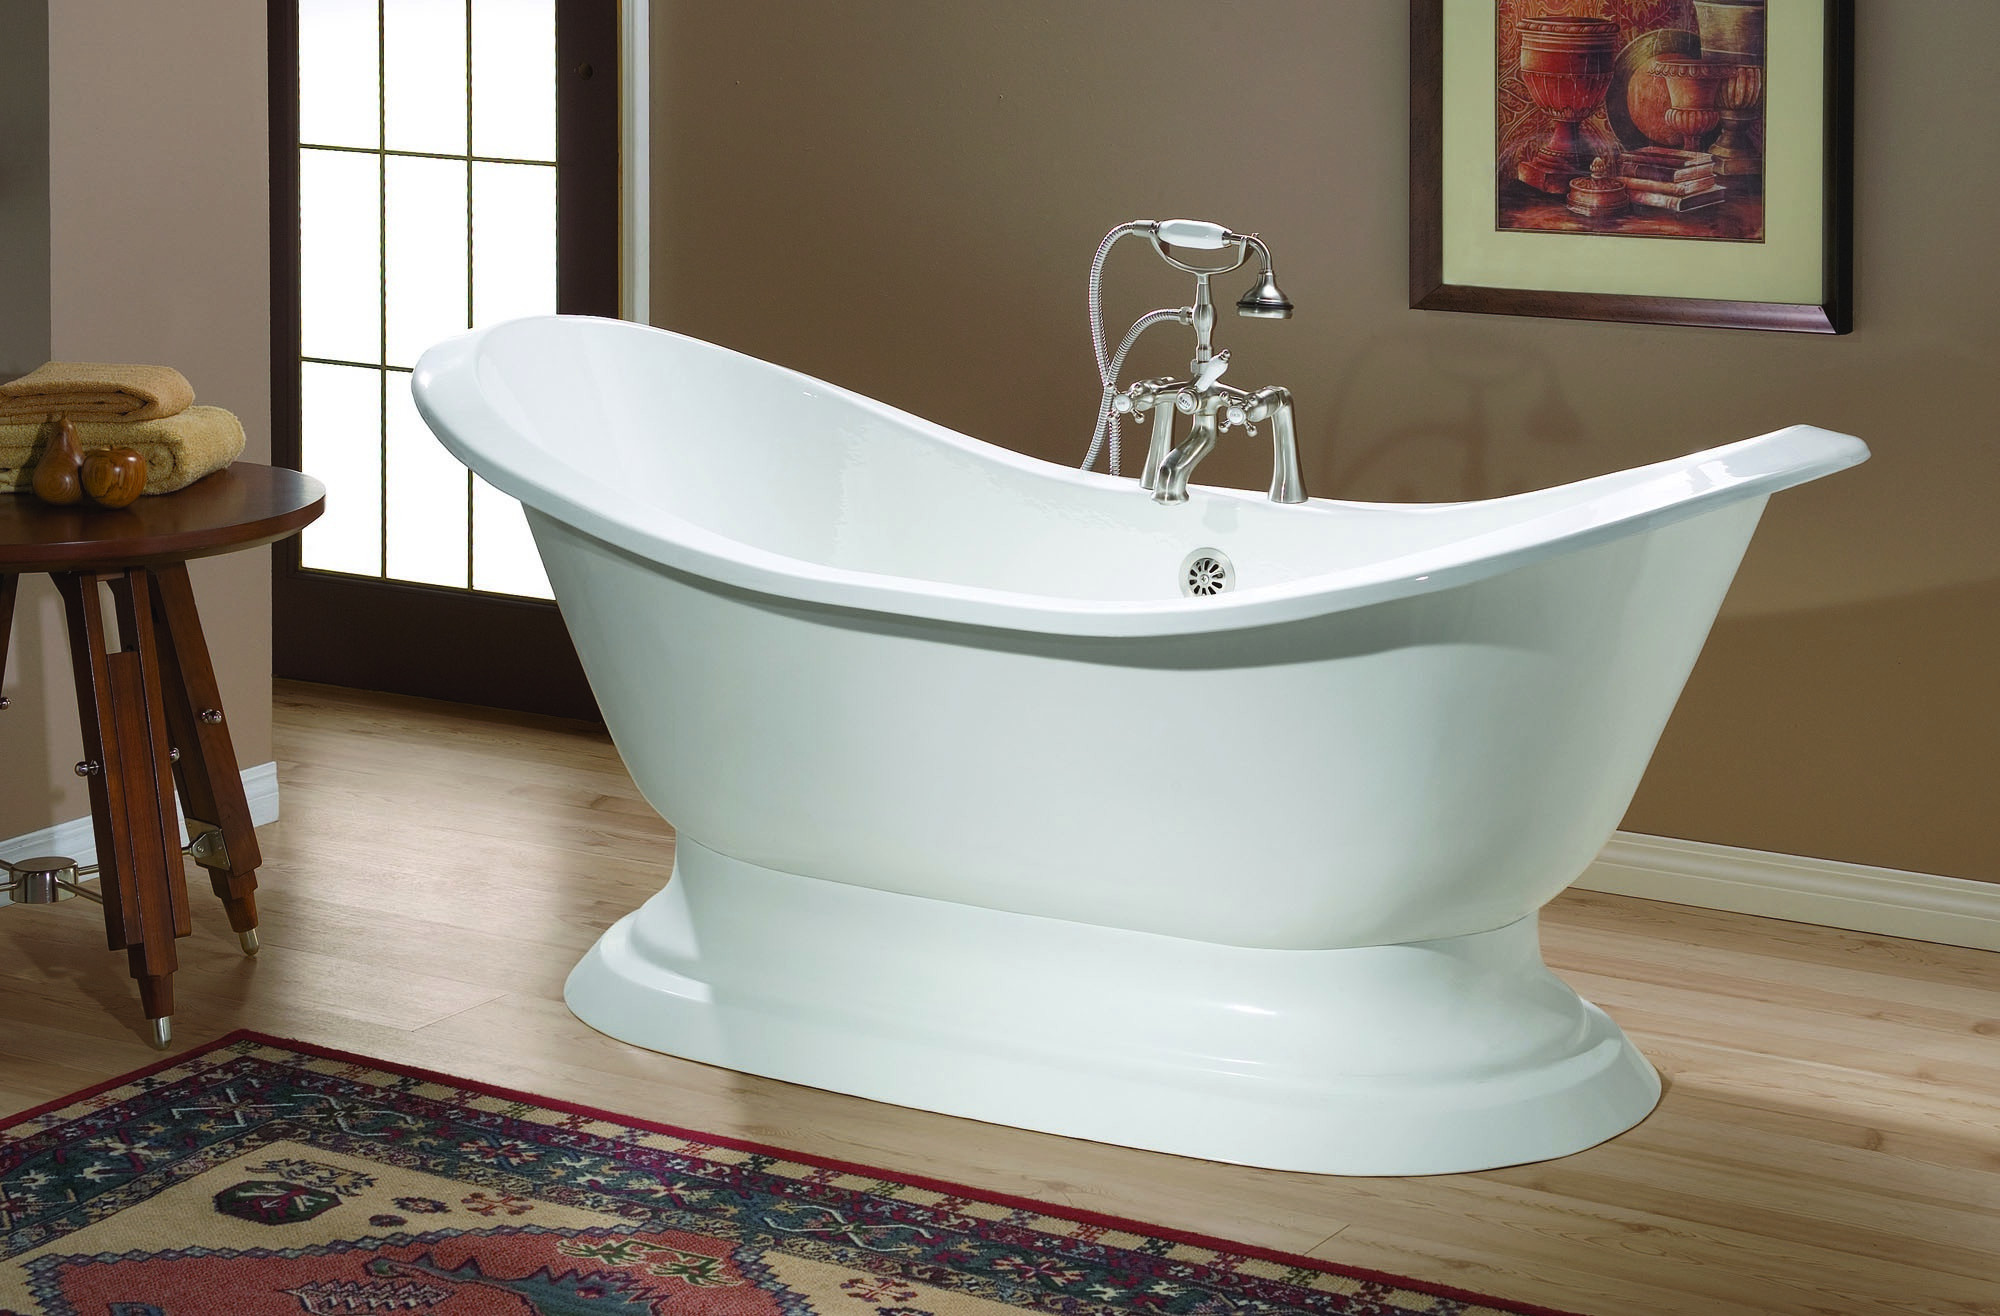 Cheviot 2153-BB-7 Cast Iron Pedestal Bathtub with Faucet Holes Drilled at 7 Inch